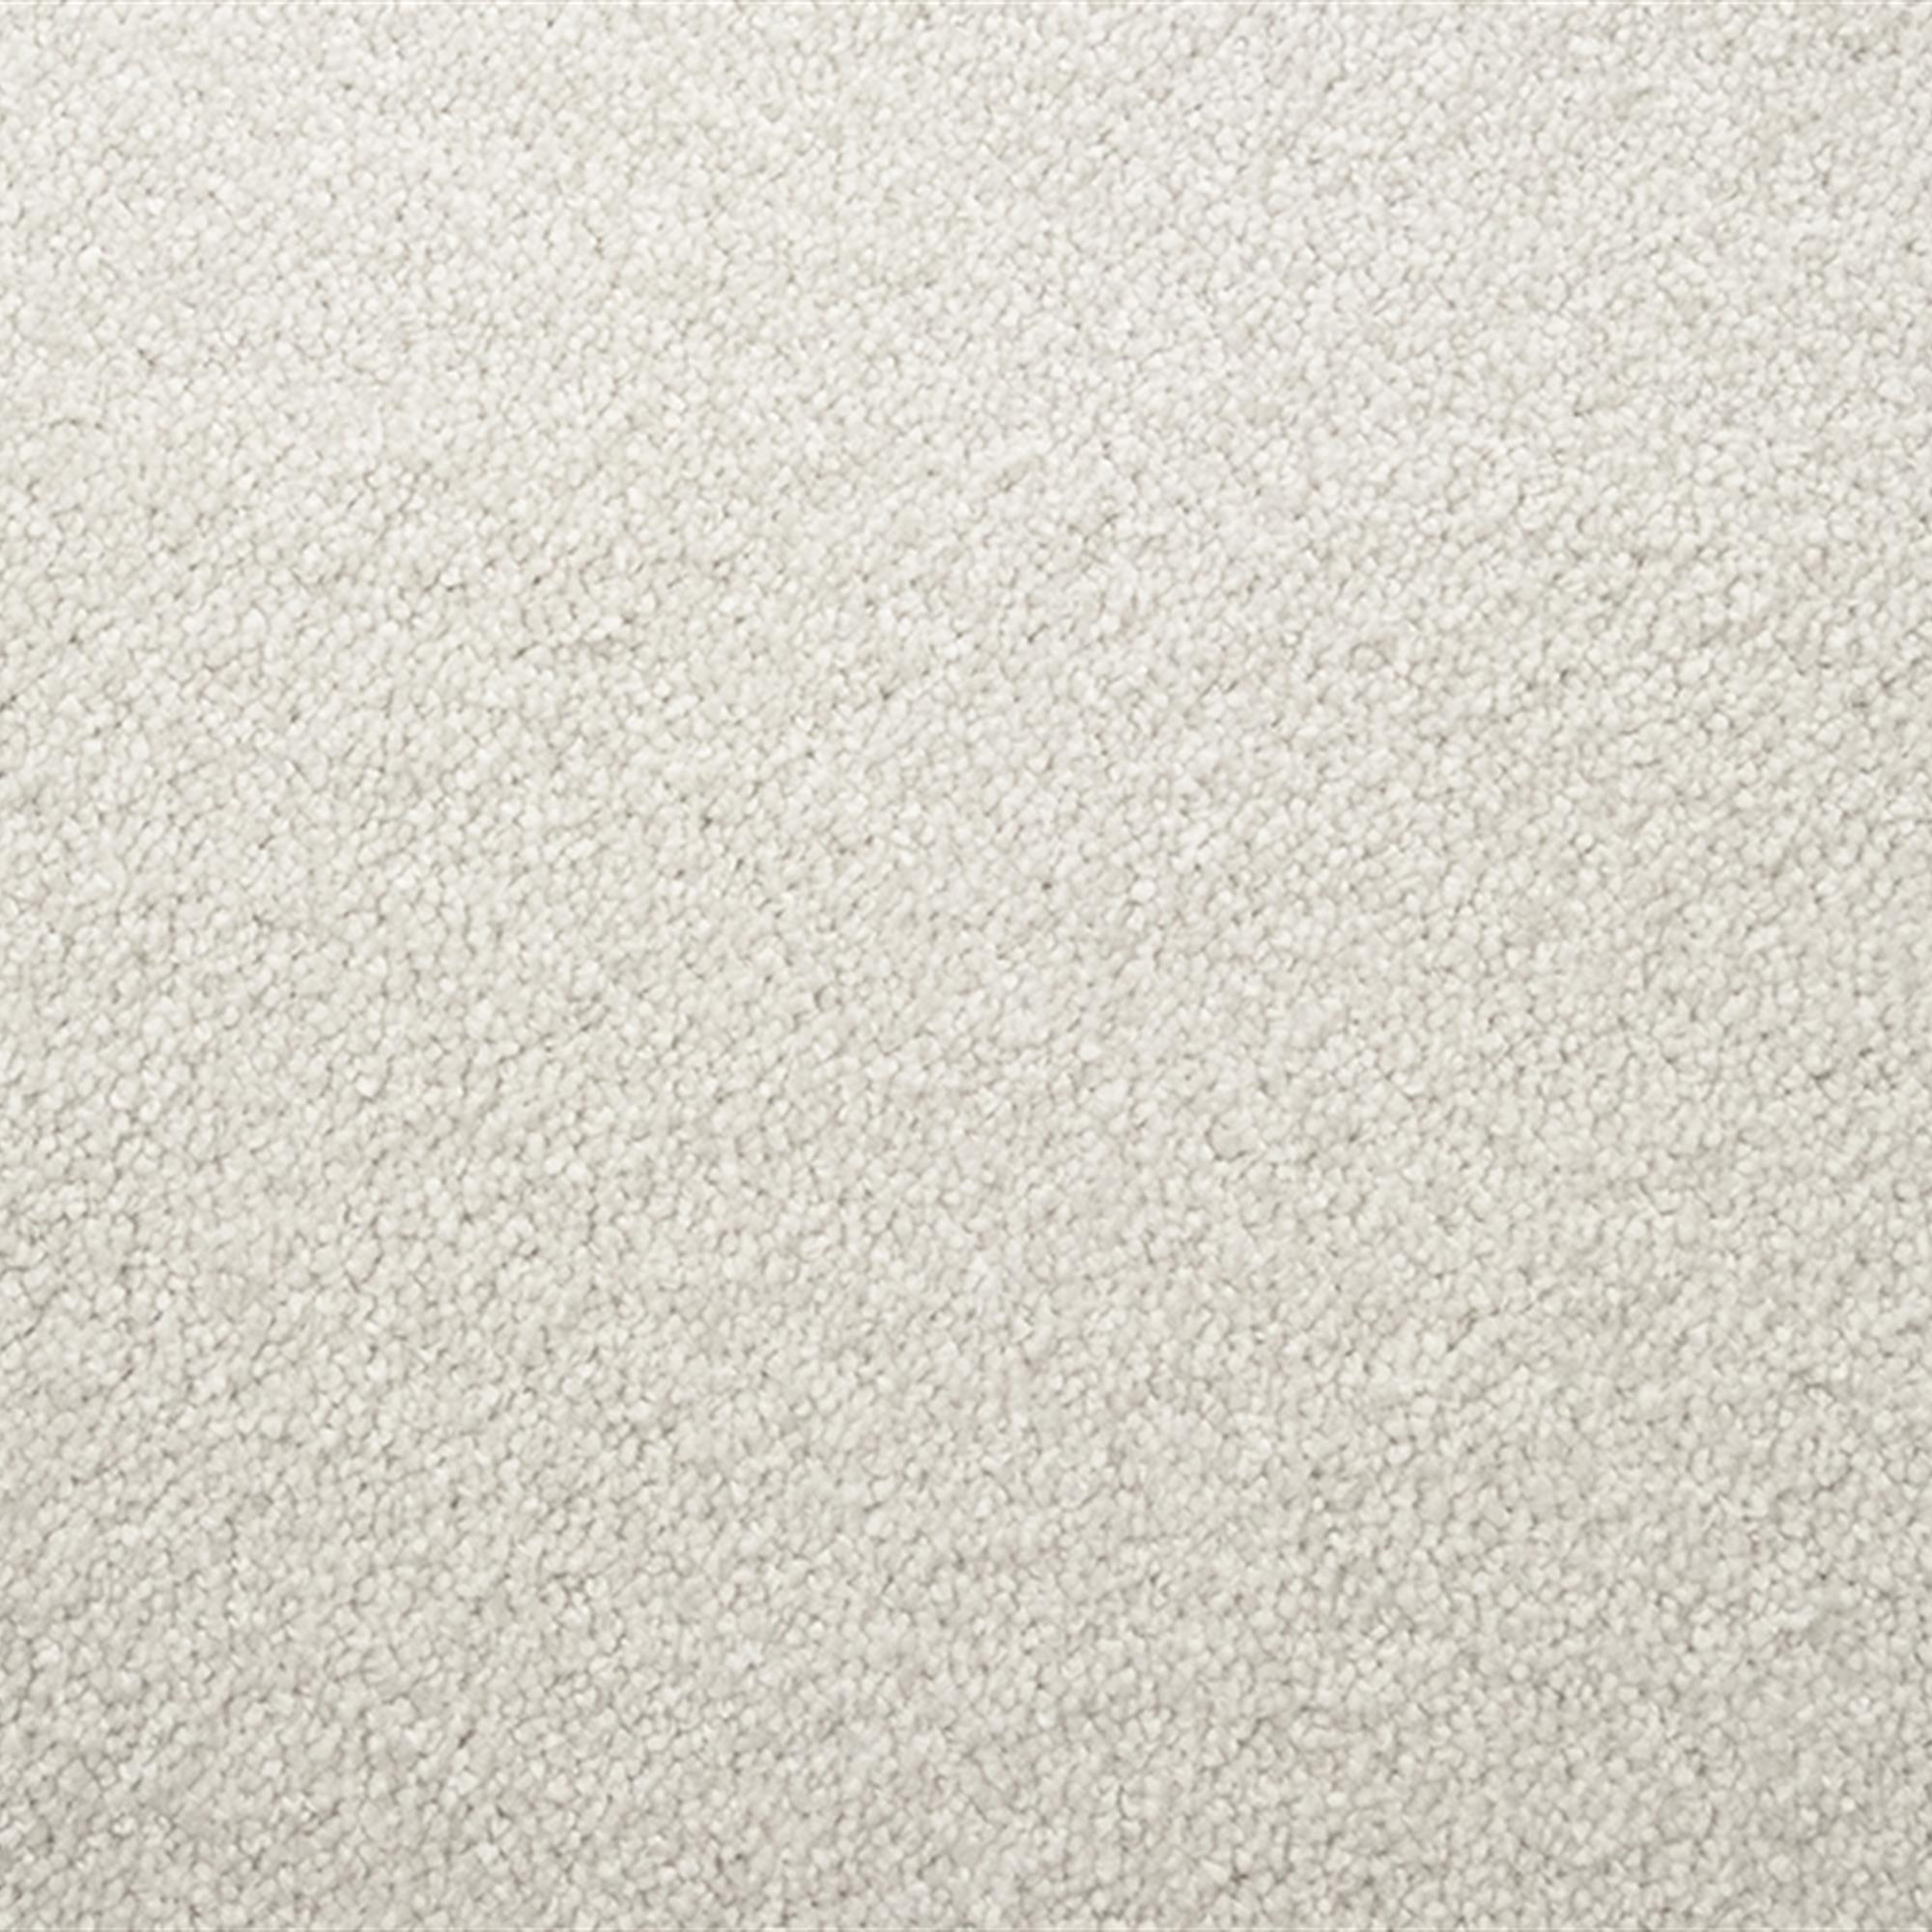 Signature Eloquence Carpet, 947 Moonshine, swatch